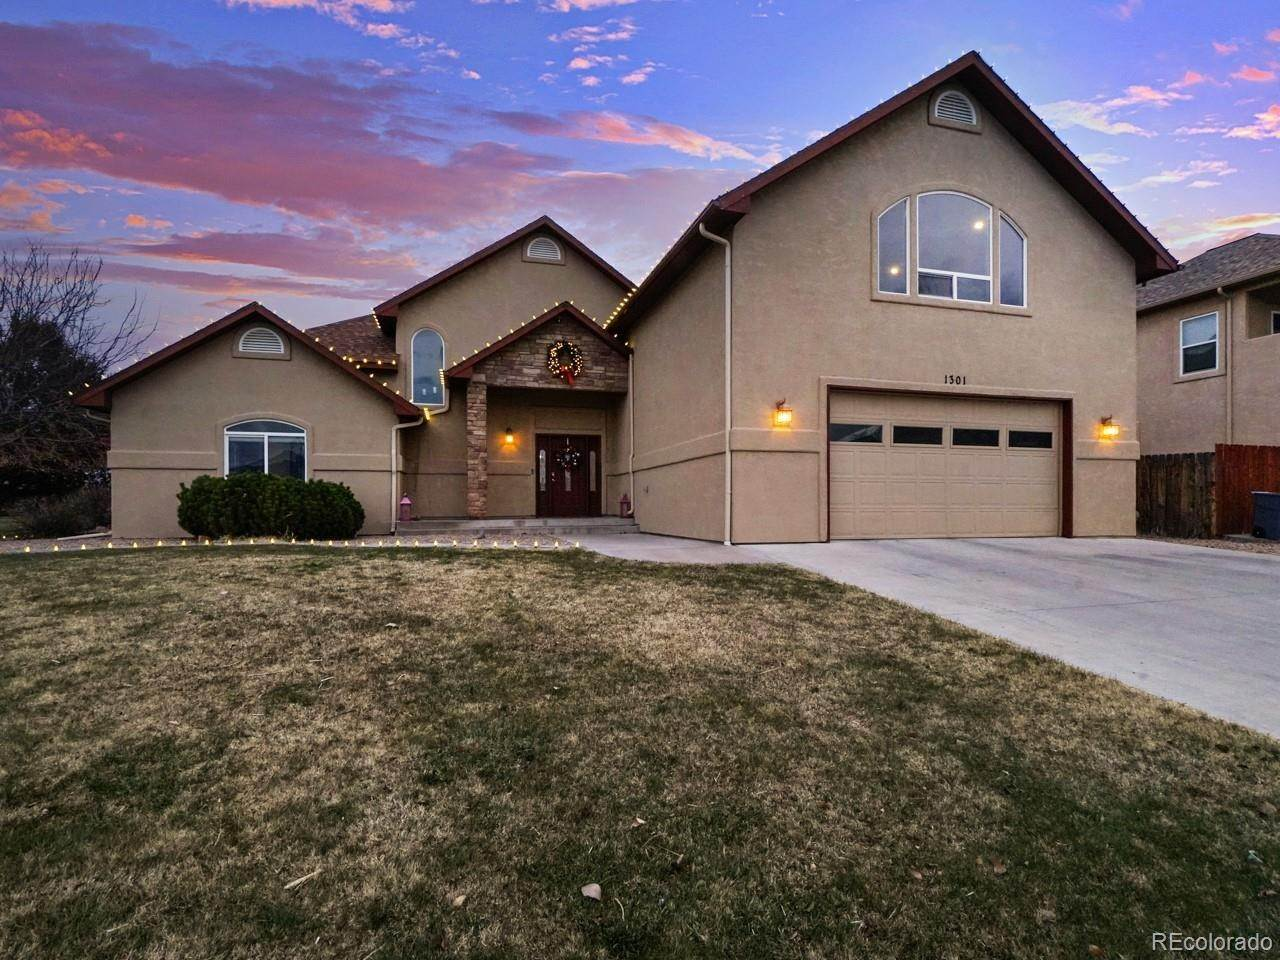 Single Family Homes for Sale at 1301 Monument Court Fruita, Colorado 81521 United States